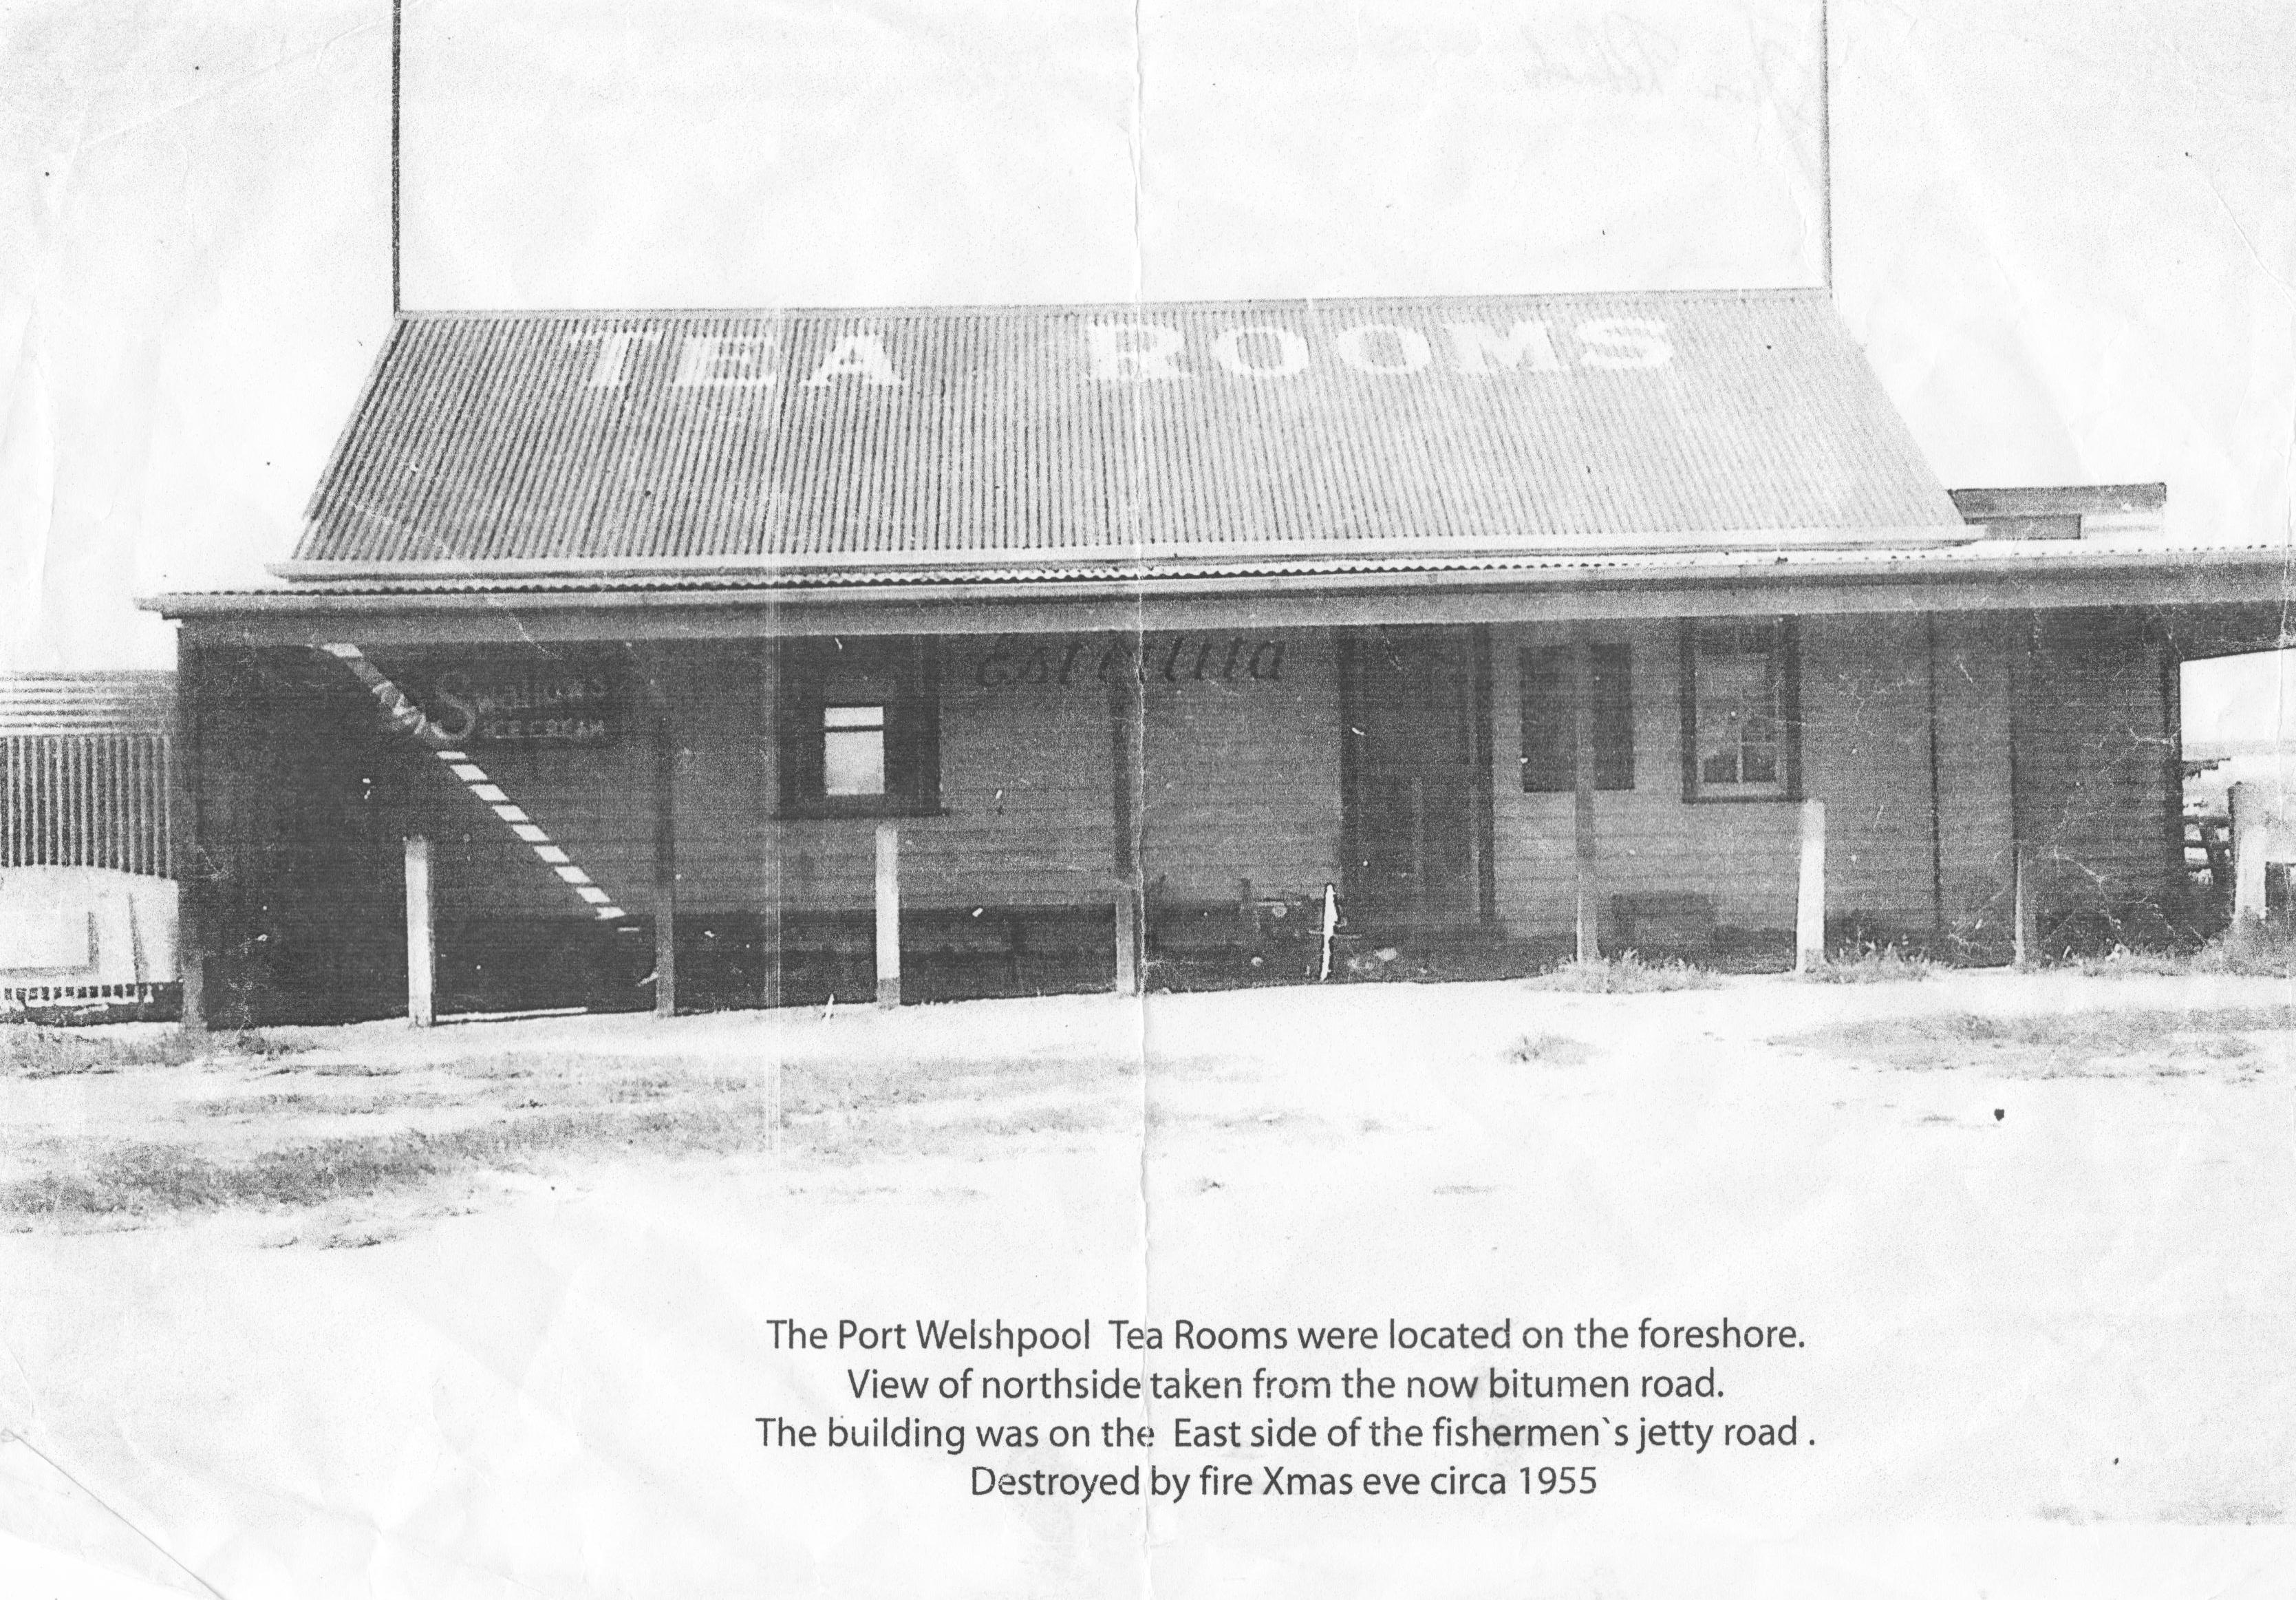 The Port Welshpool Tea Rooms were located on the foreshore.  View of northside taken from the now bitumen road.  The building was on the eastside of the fishermen's jetty road.  Destroyed by fire Xmas eve circa 1955